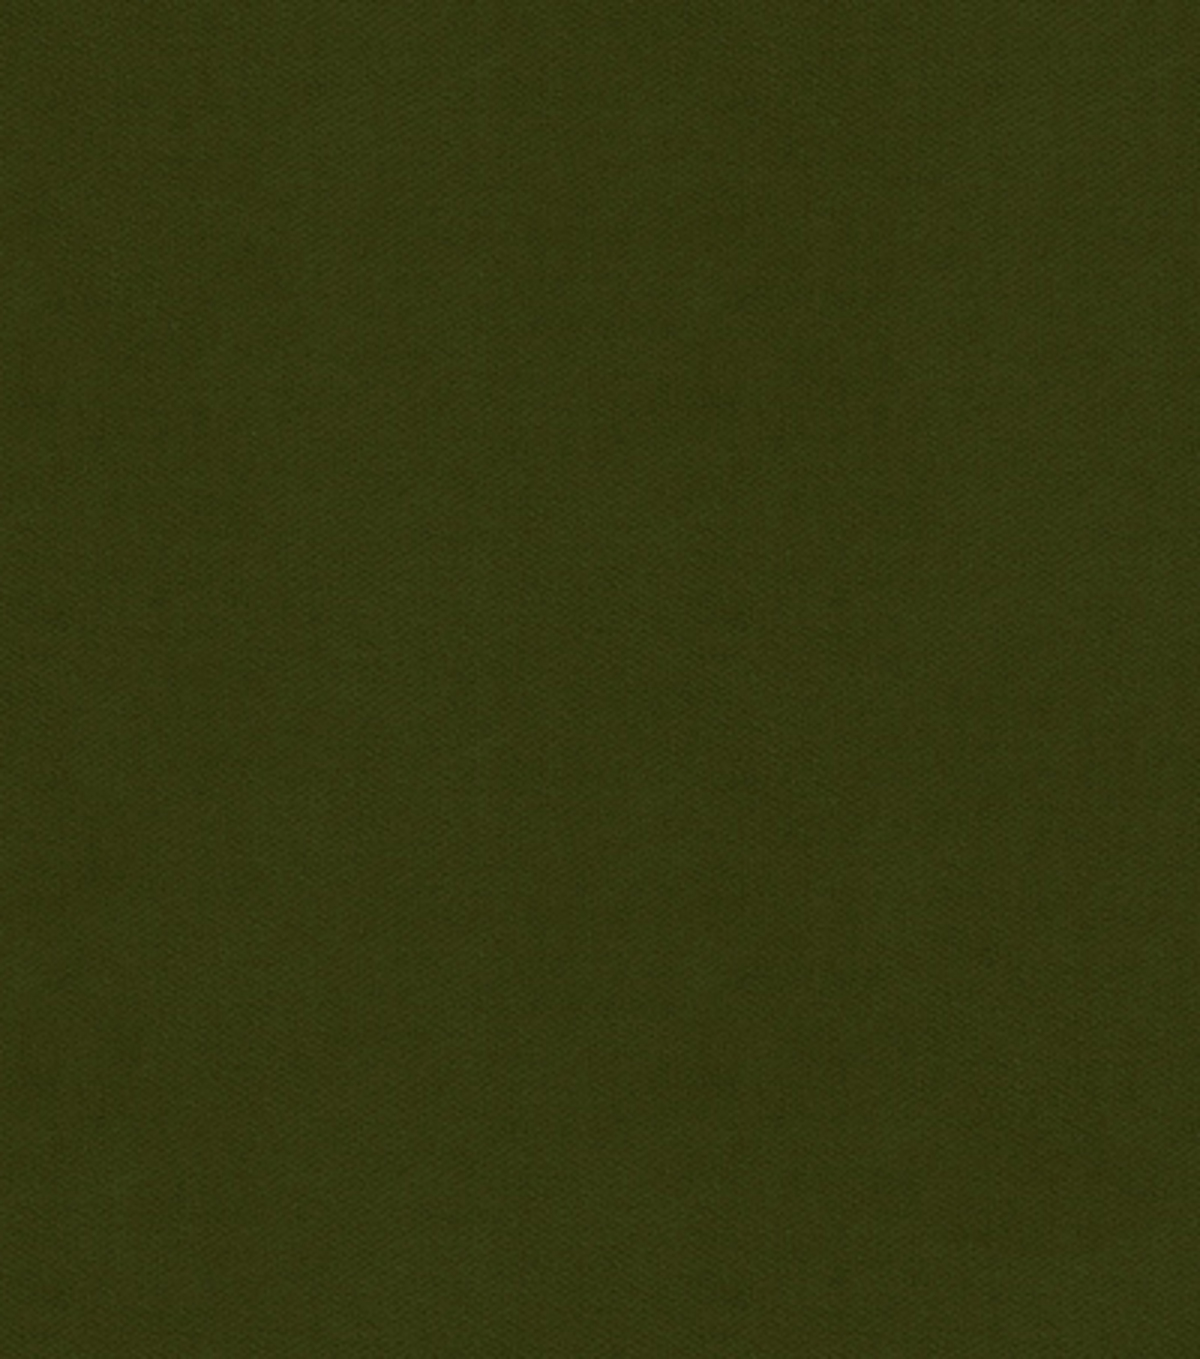 Home Decor 8\u0022x8\u0022 Fabric Swatch-Como-987-Jade